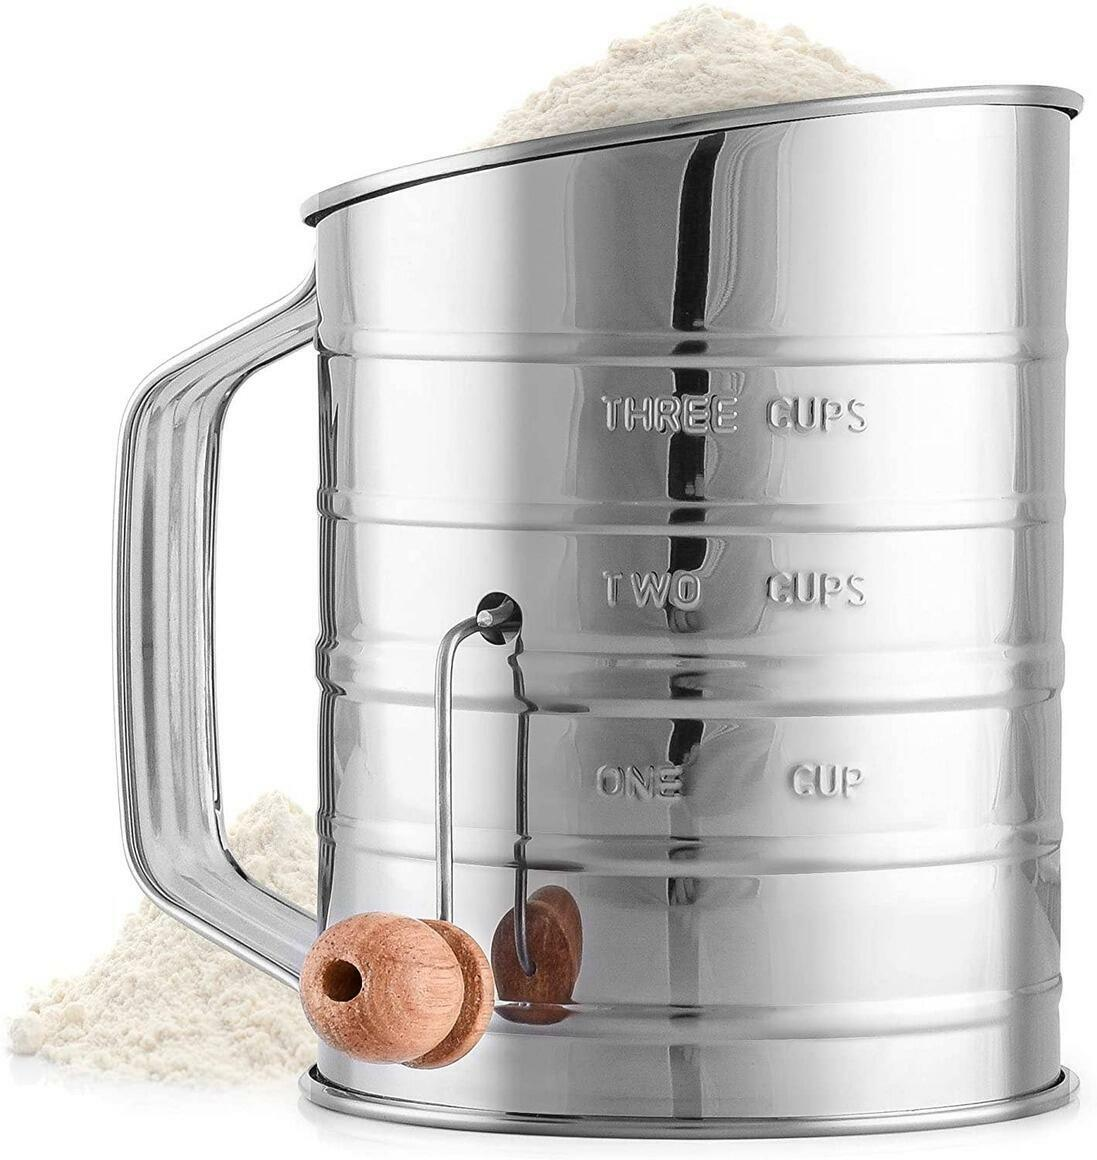 Flour Sifter with Agitator Wire Loop For Baking Cakes & More | Trada Marketplace